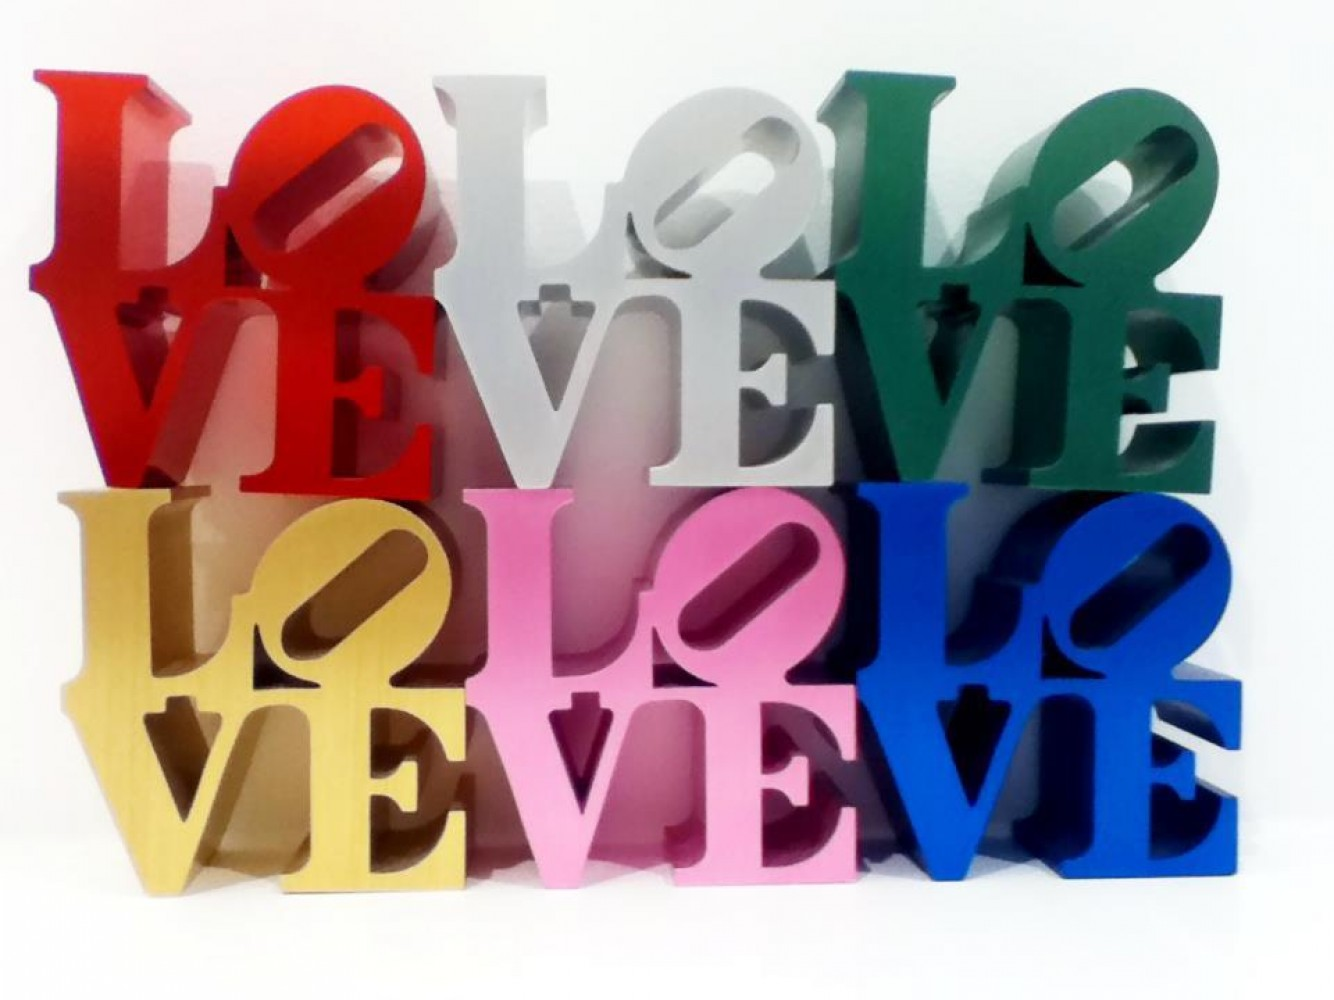 Love Aluminum set of 6 Sculpture 2000 by Robert Indiana